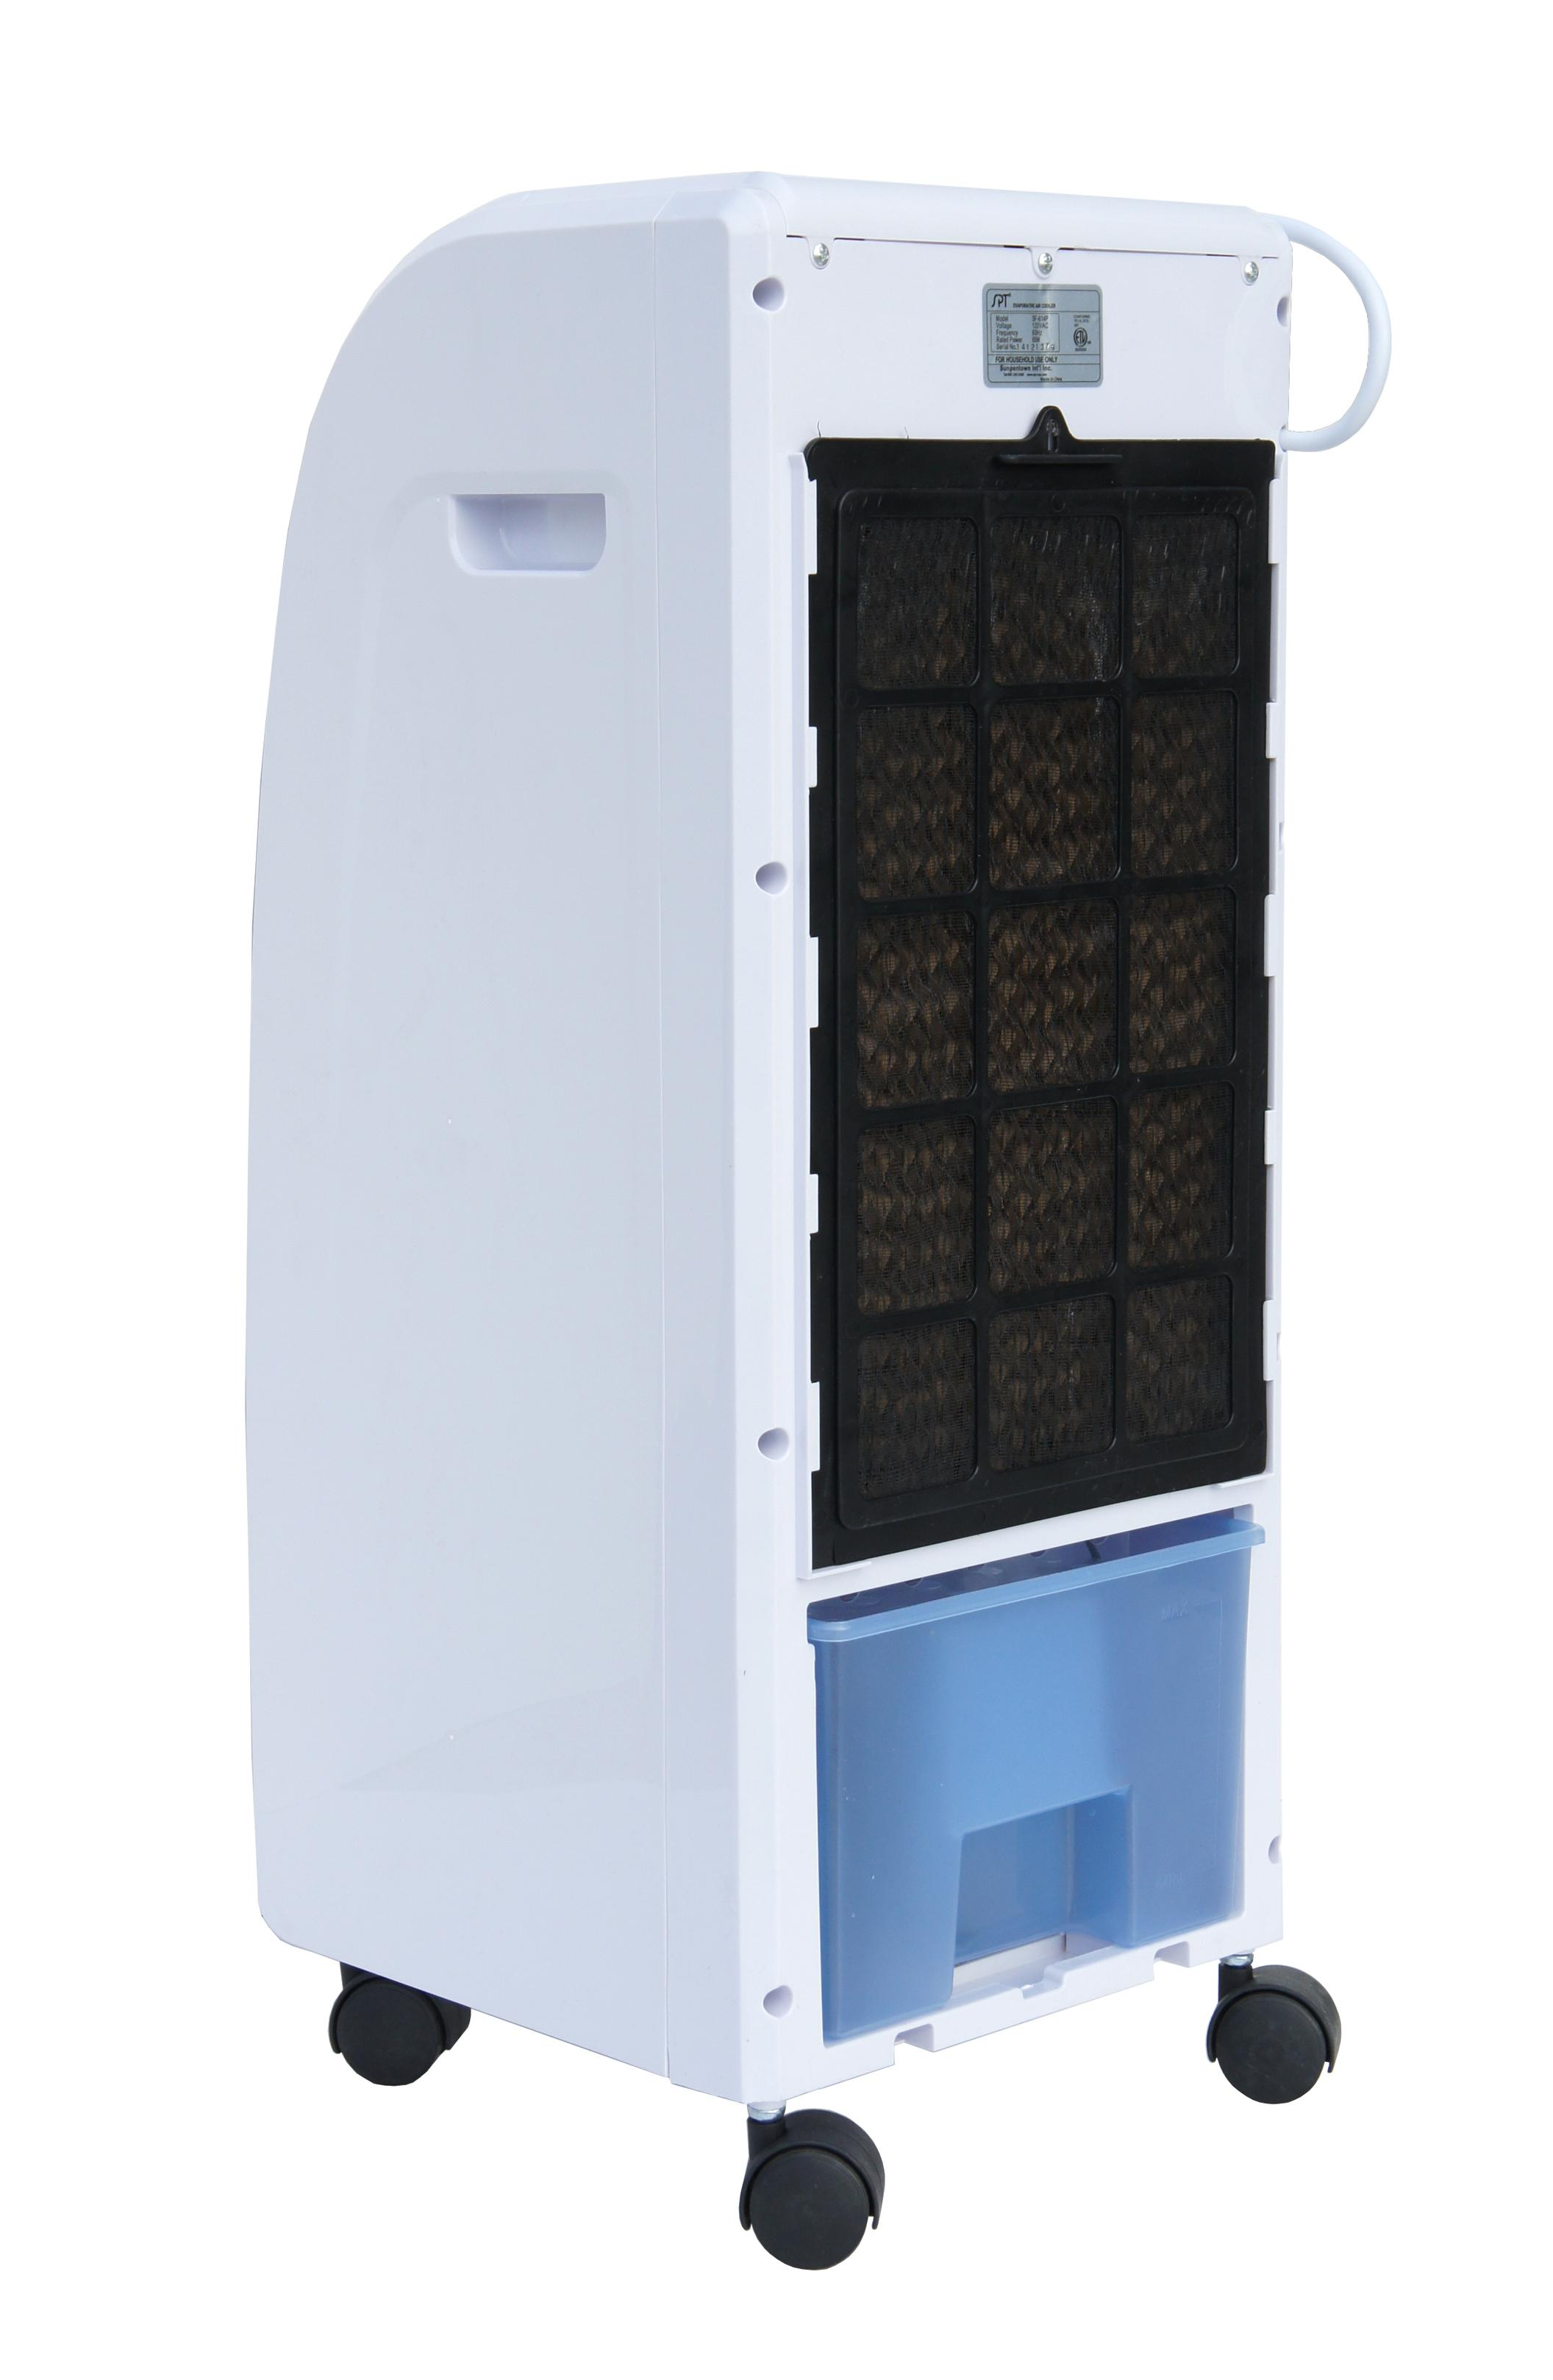 SPT SF 614P Evaporative Air Cooler with 3D Cooling Pad: Home & Kitchen #3D608E